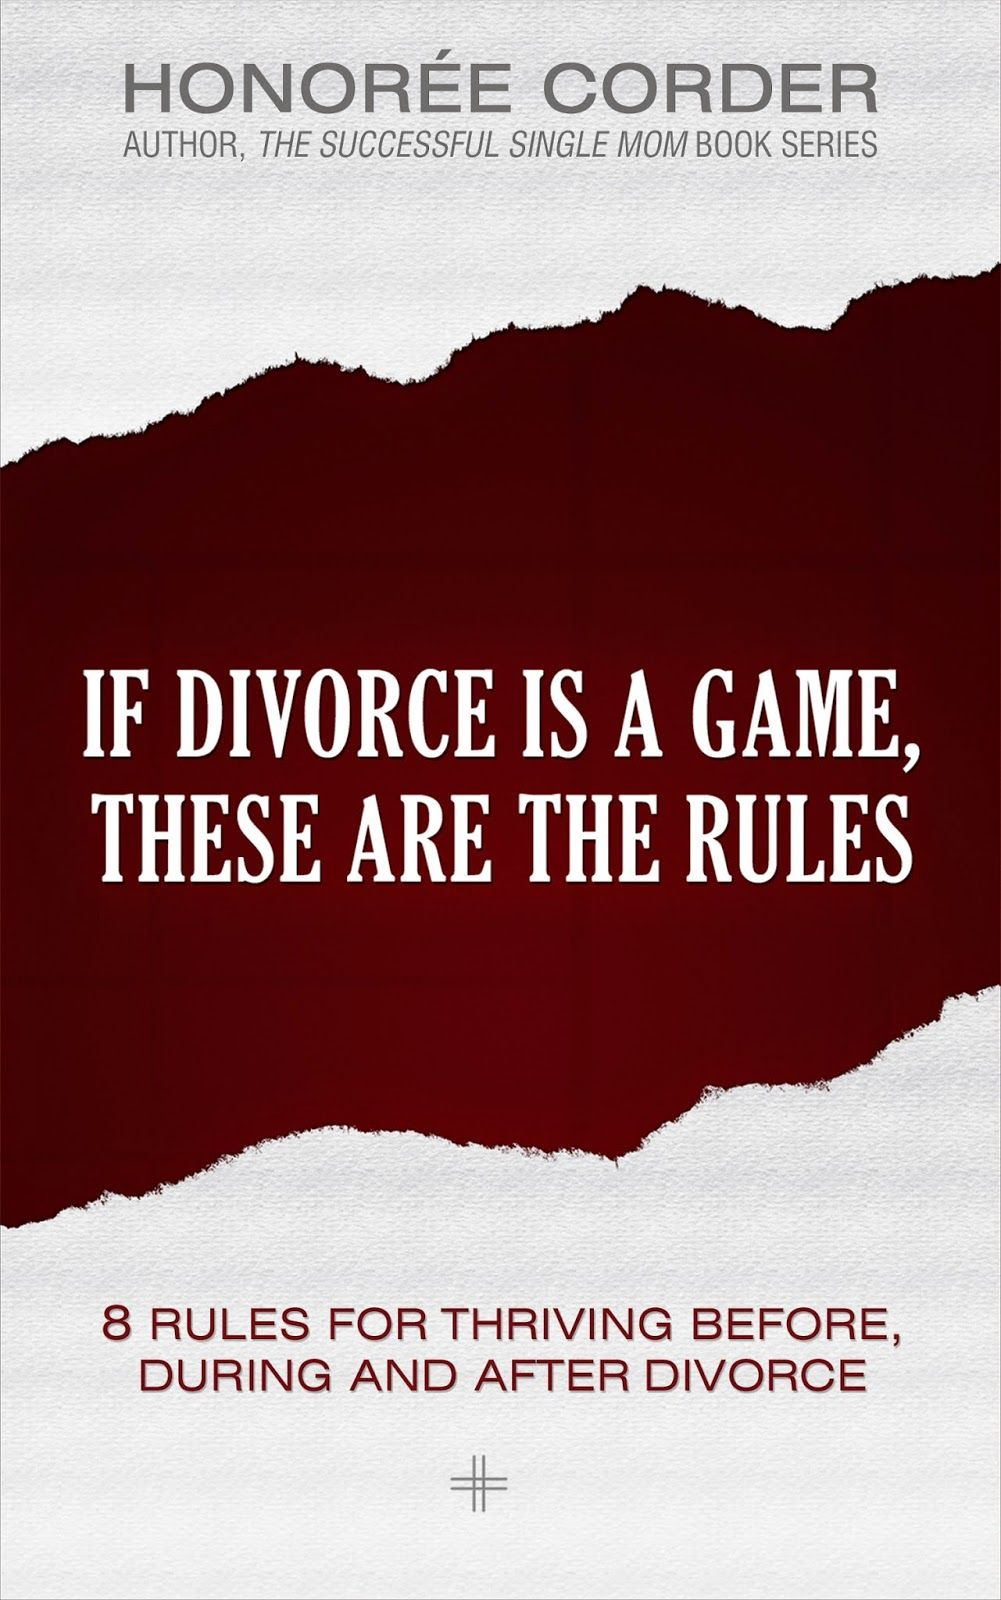 What Are The Rules For Dating After Divorce